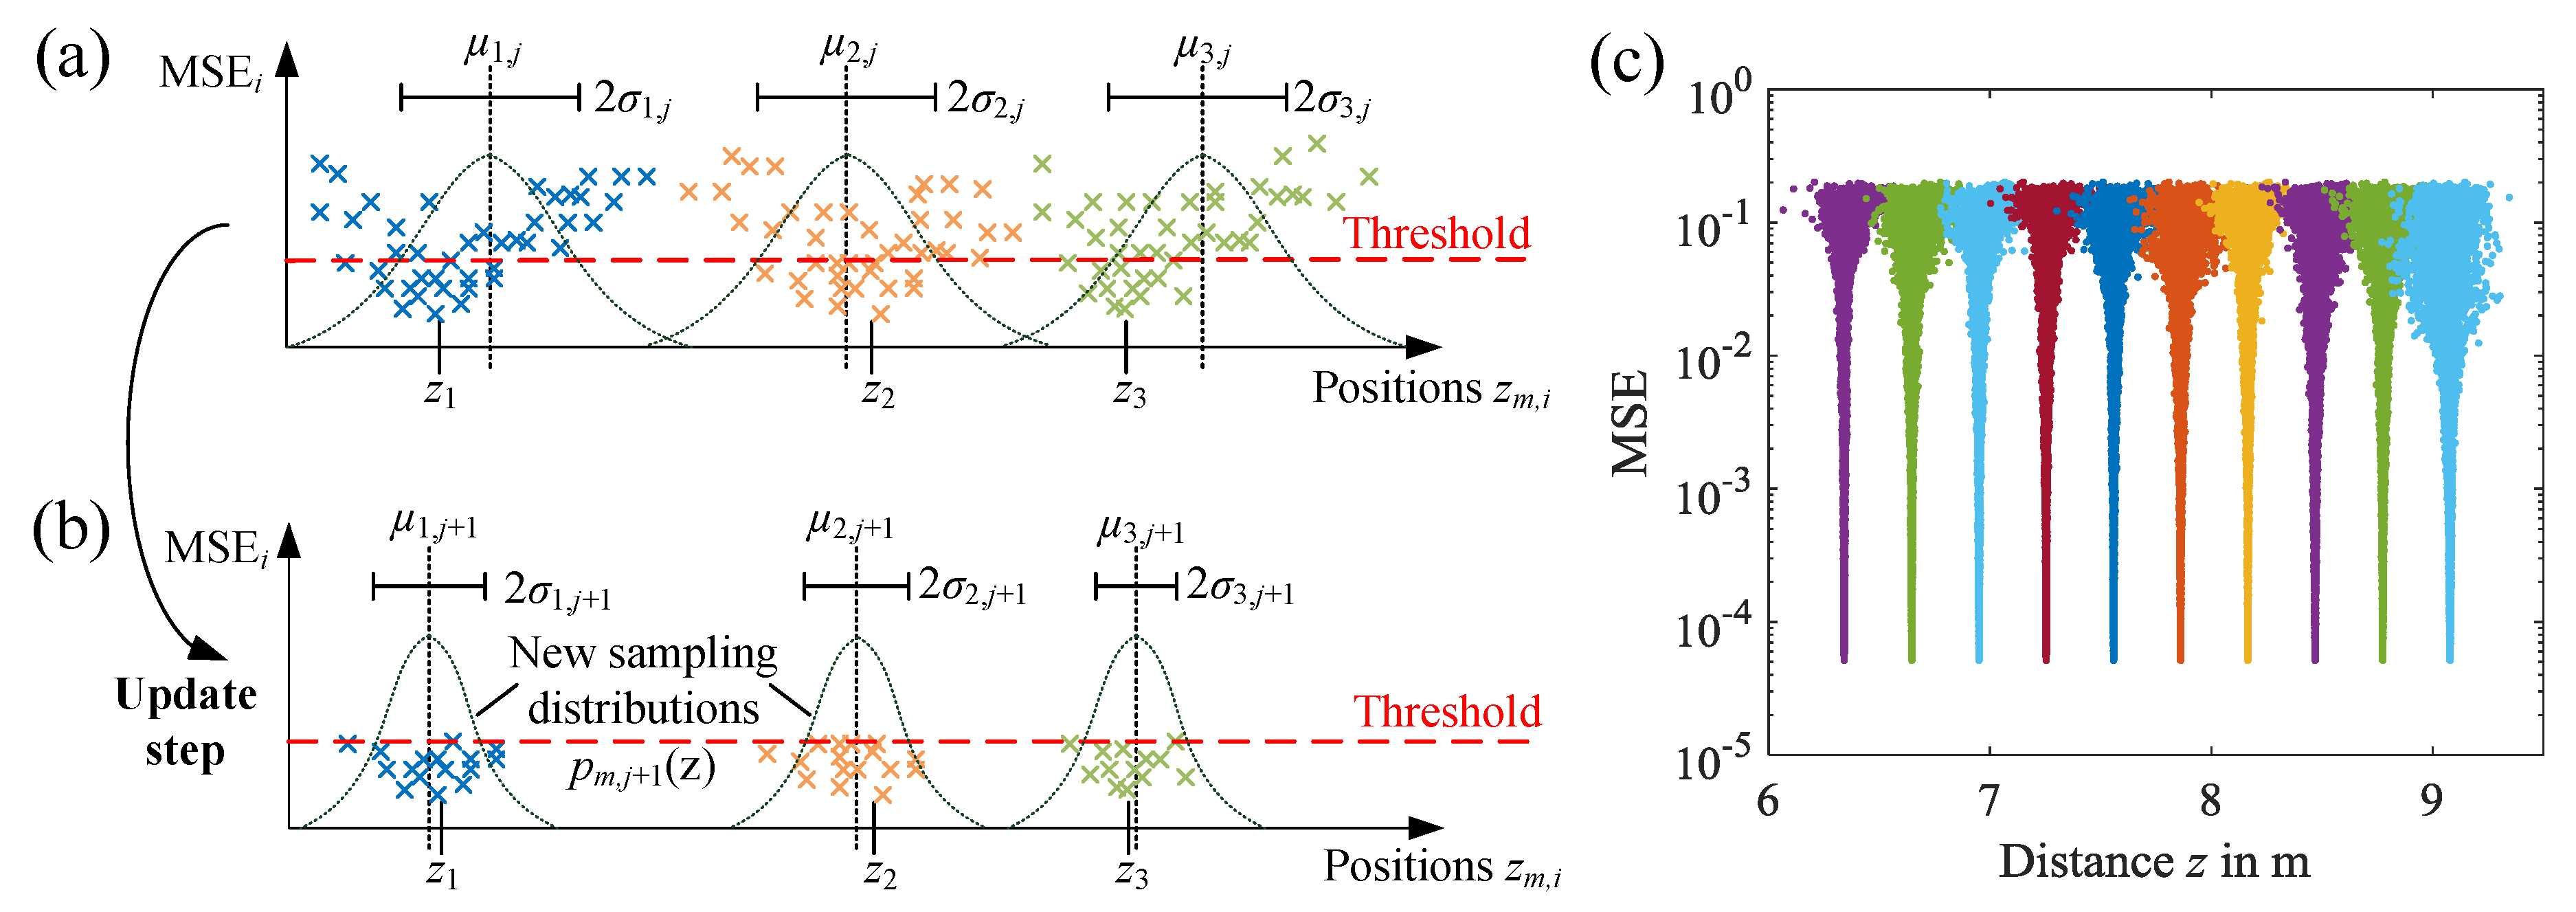 Sensors | Free Full-Text | Model-Based Position and